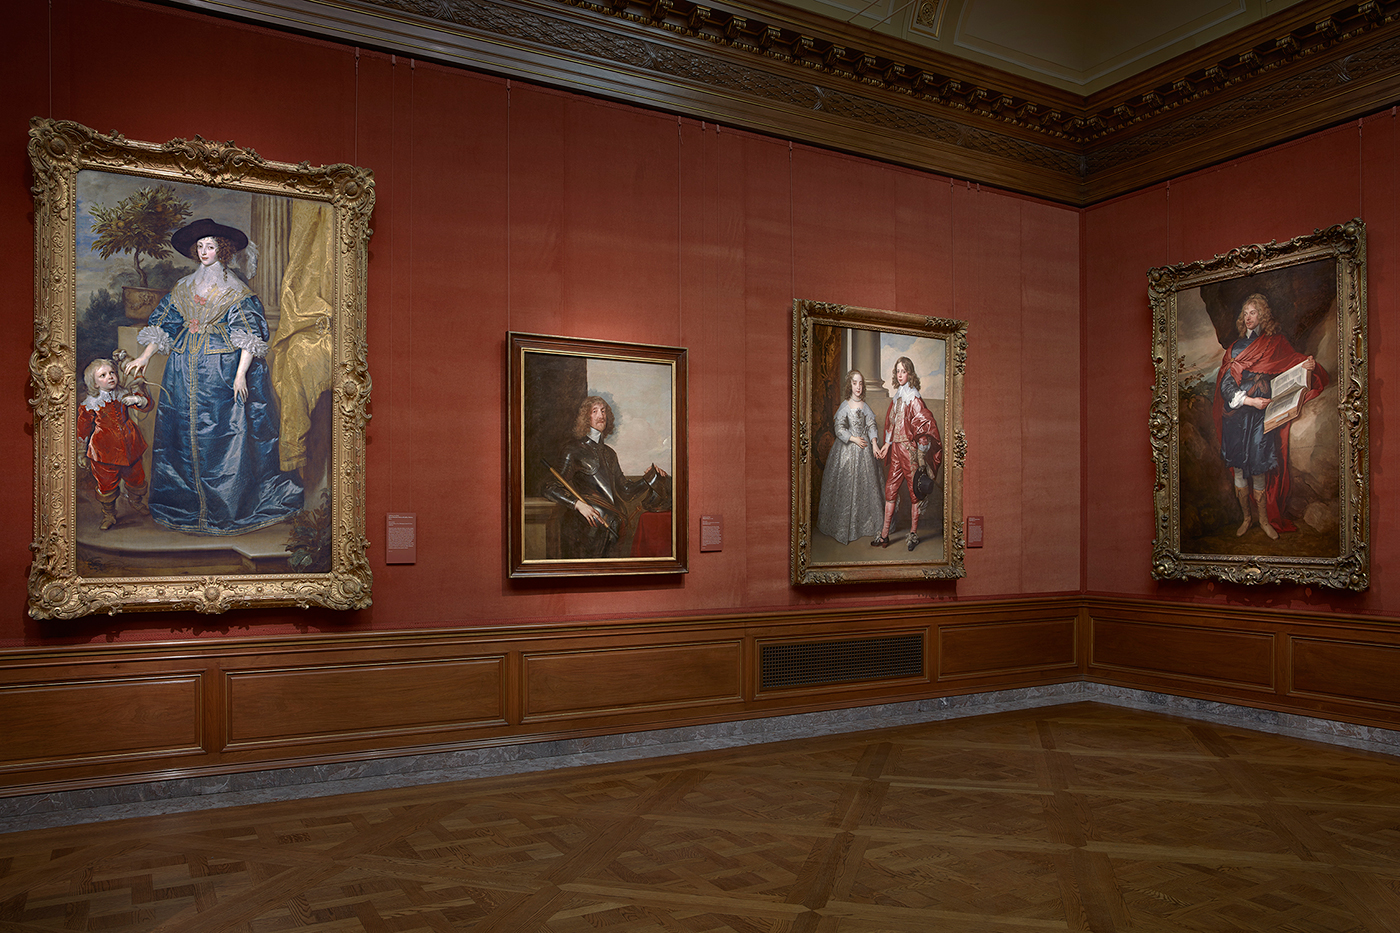 Installation view, works in the East Gallery in 'Van Dyck: The Anatomy of Portraiture' at the Frick Collection (photo by Michael Bodycomb) (click to enlarge)